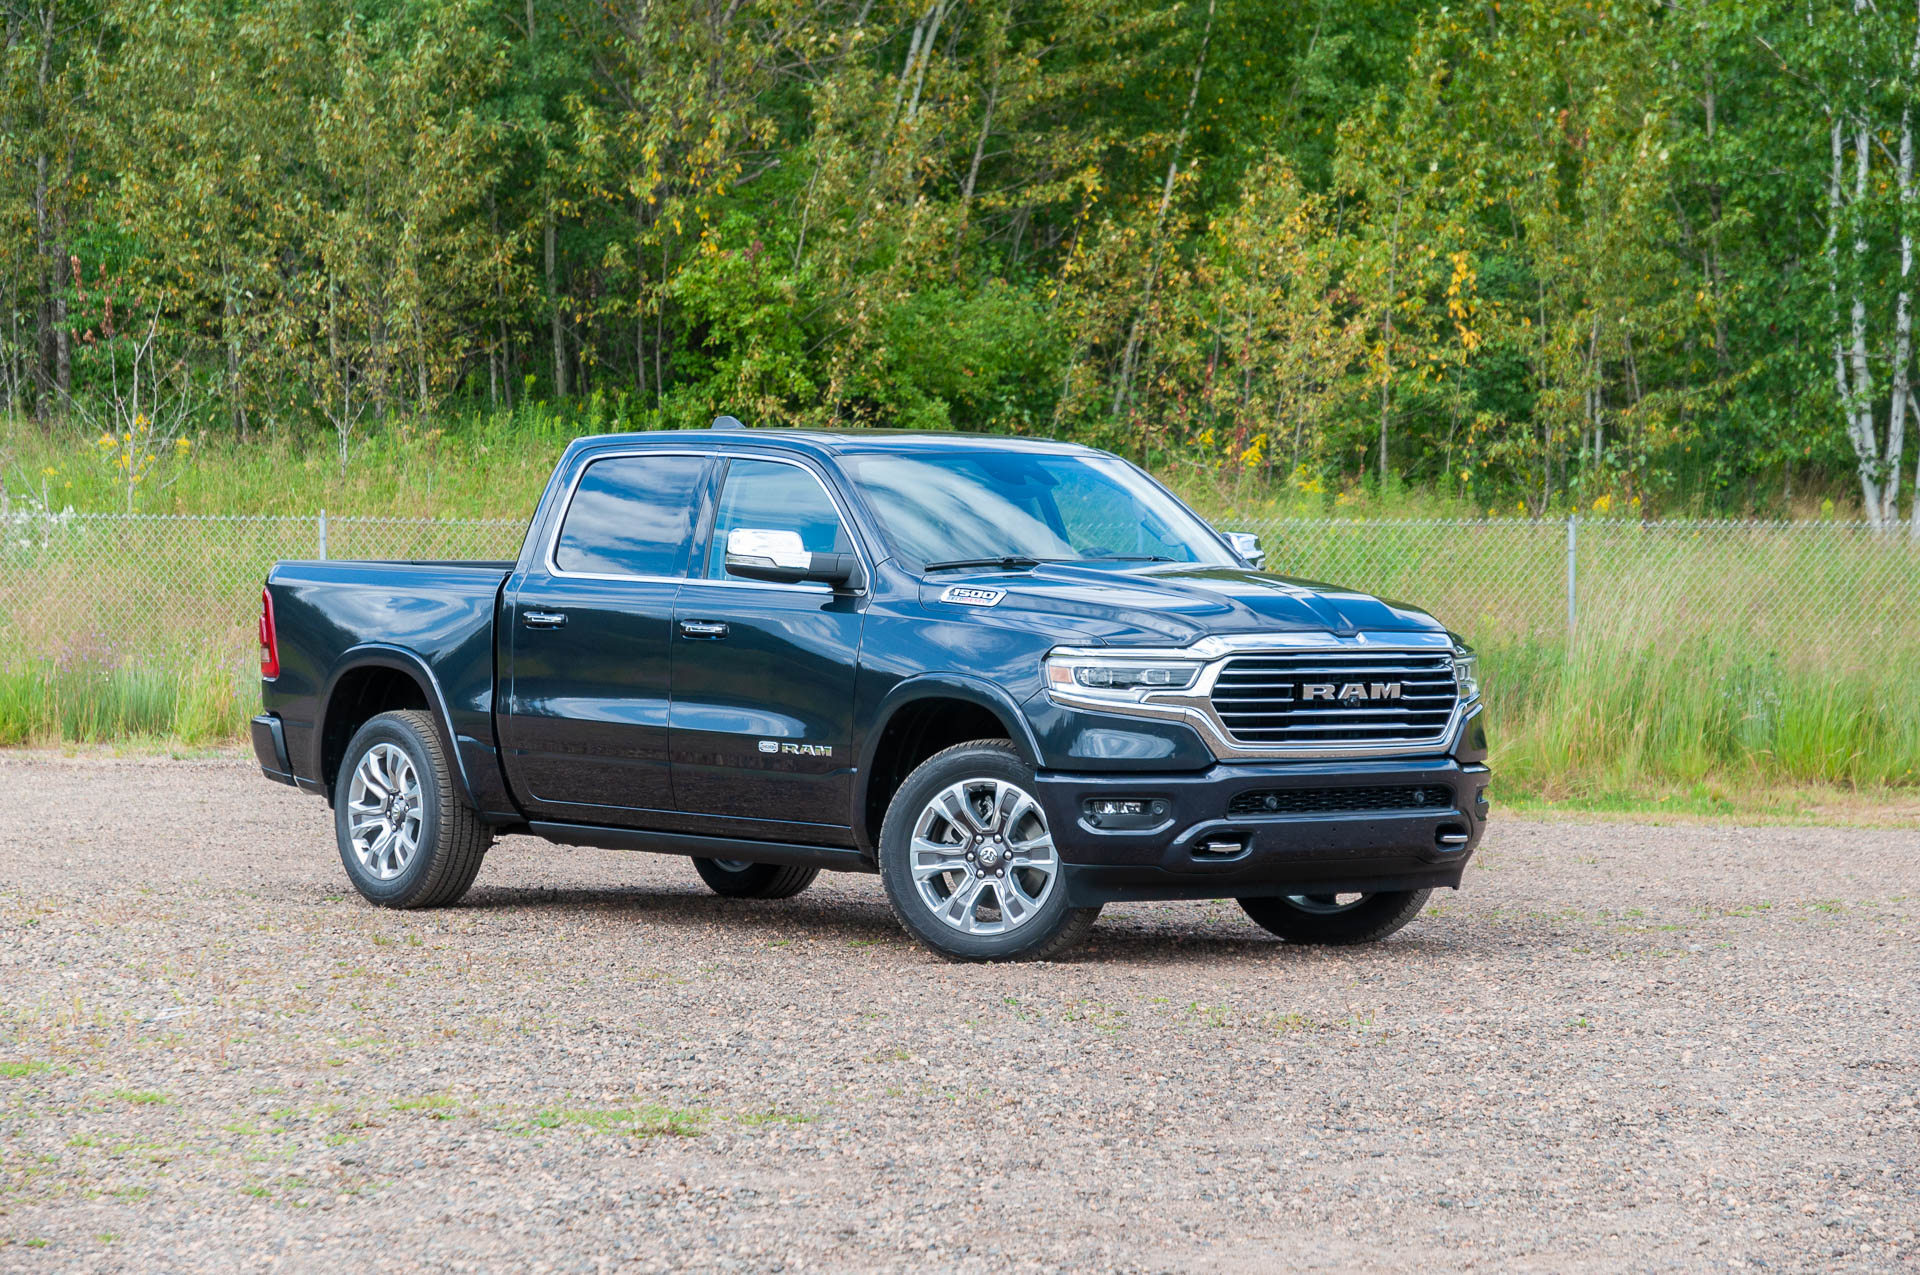 47 Best Review 2020 Dodge Ecodiesel Images by 2020 Dodge Ecodiesel